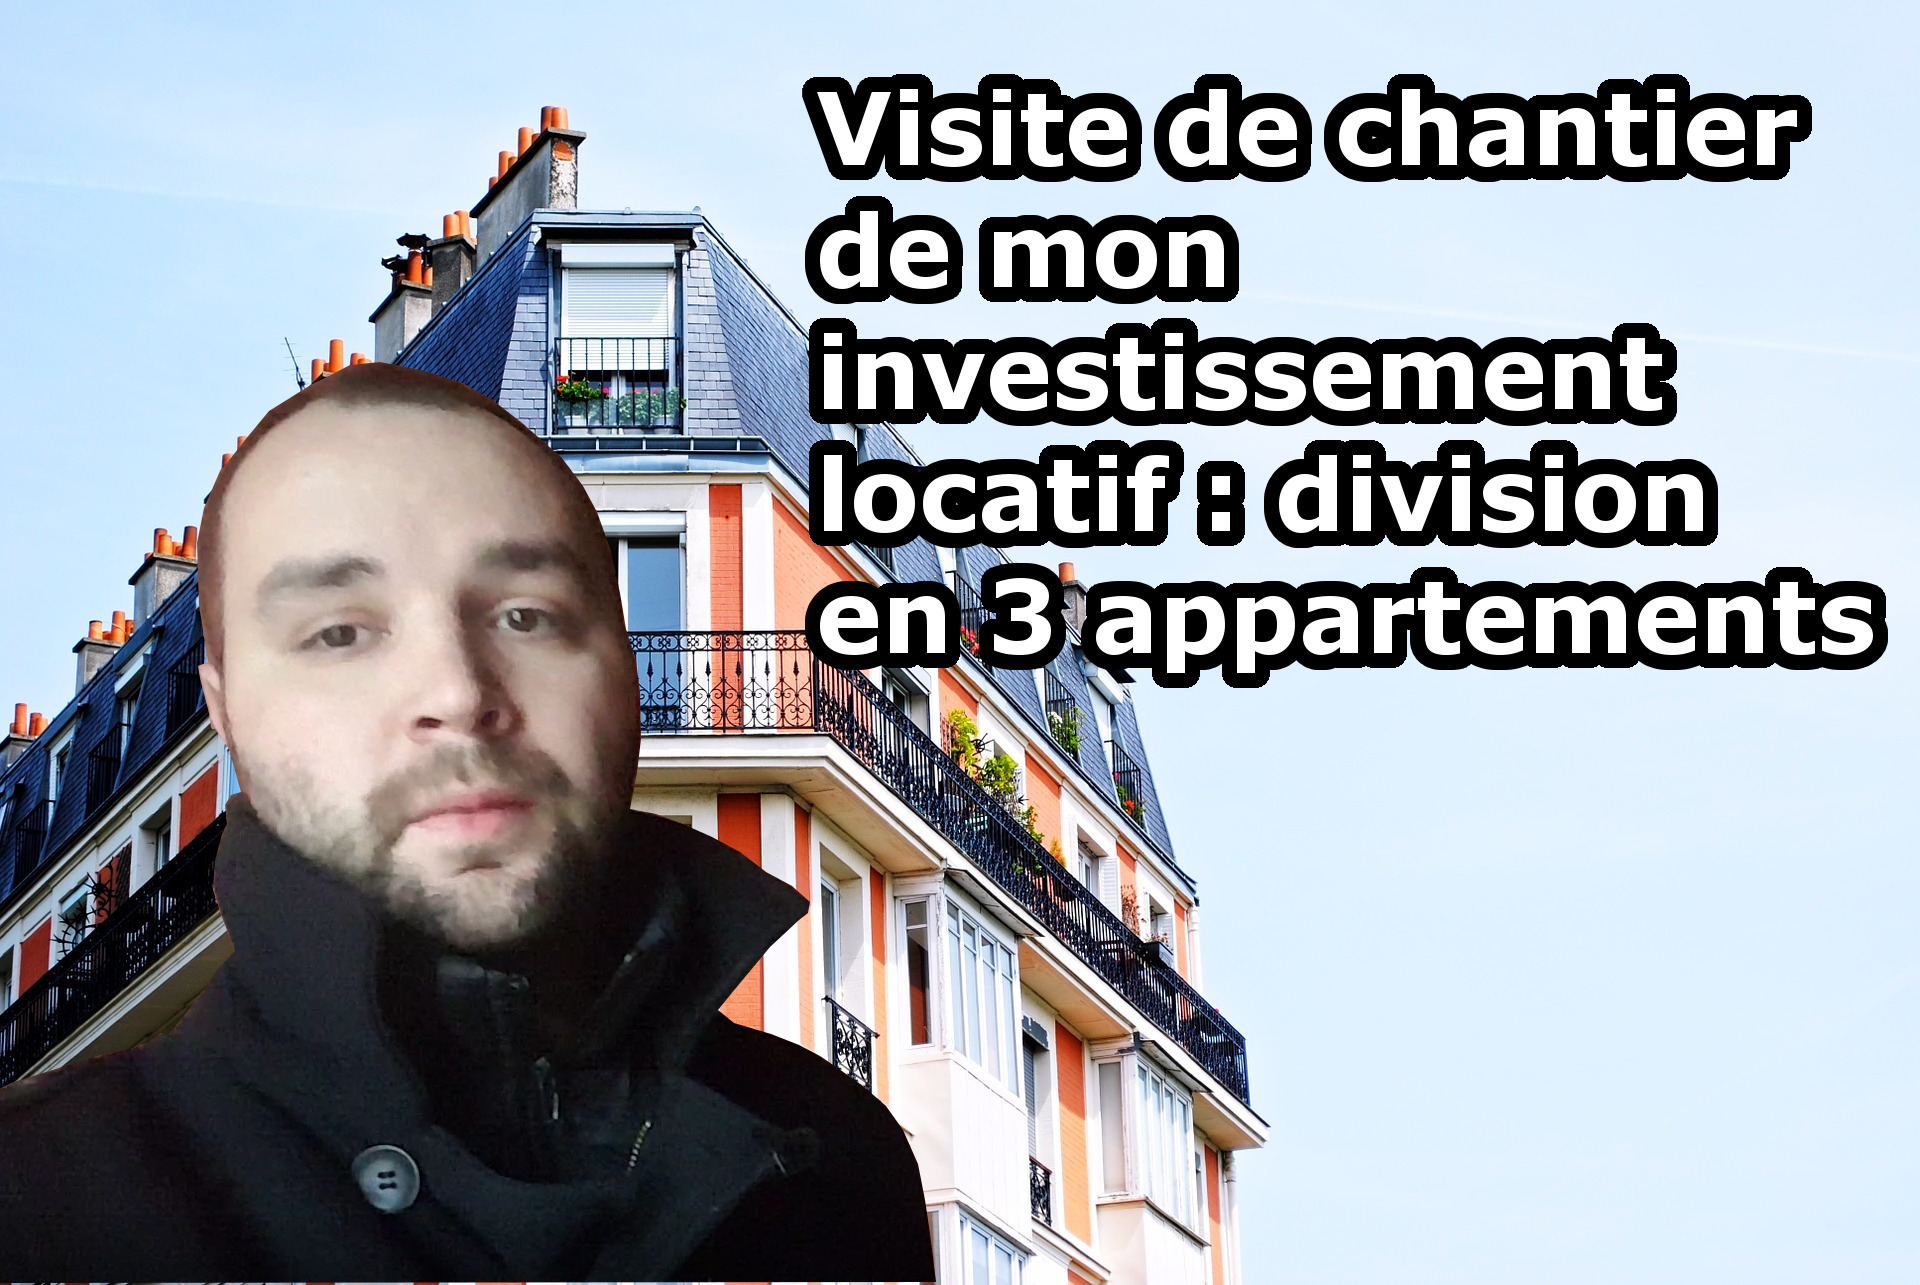 Visite de chantier investissement locatif : division en 3 appartements